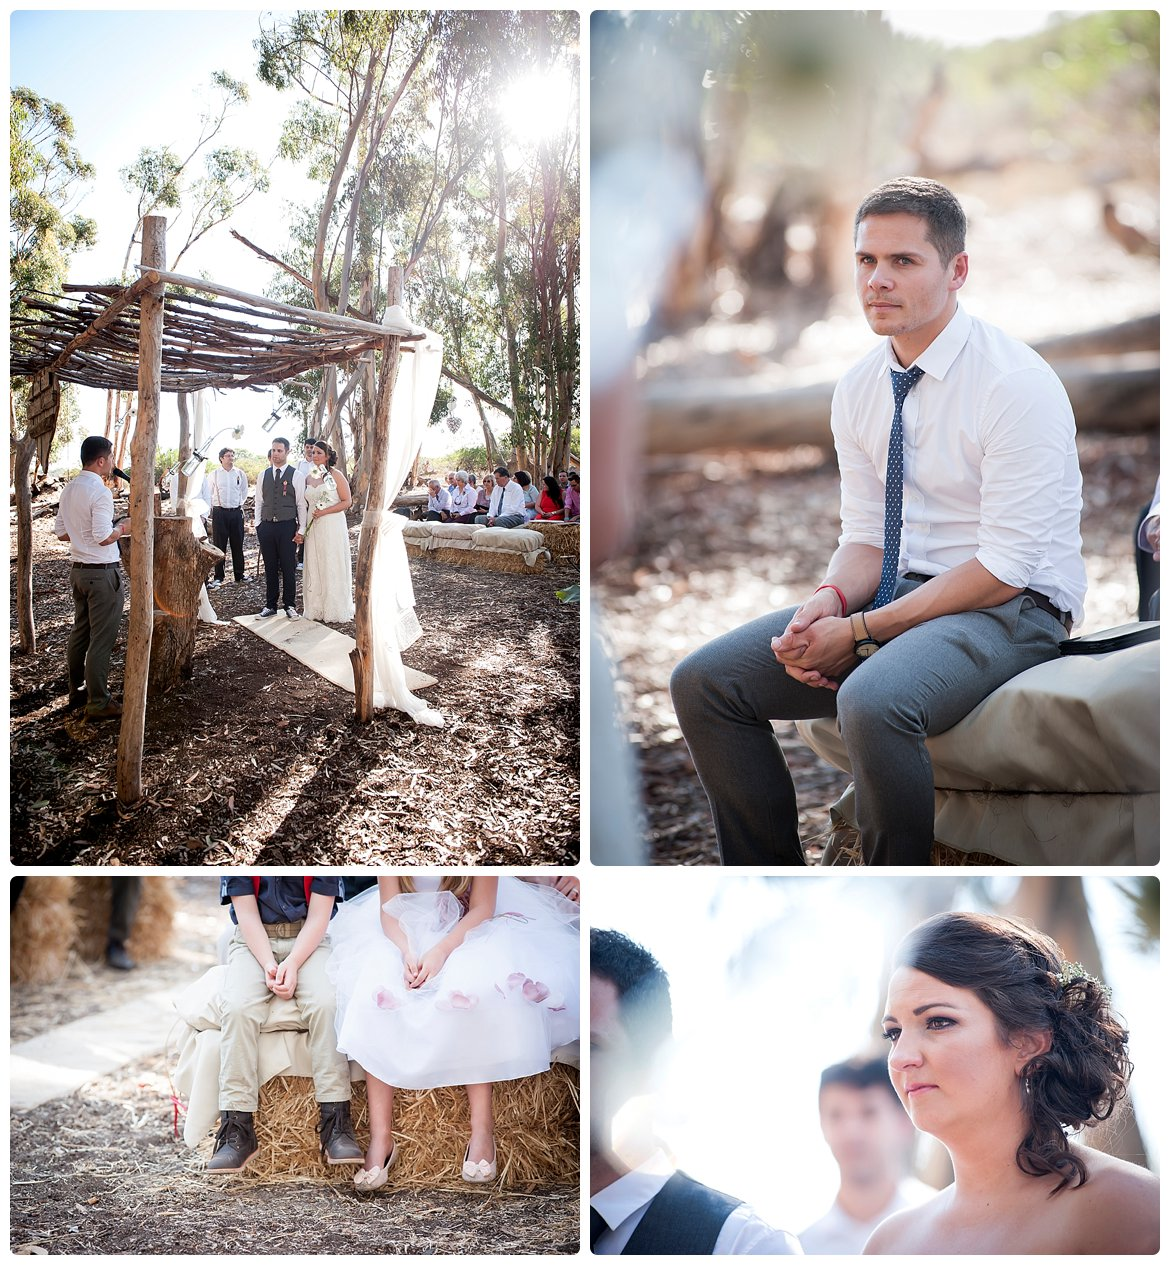 cape-town-wedding-photographer-schaftplaas-langebaan-0015